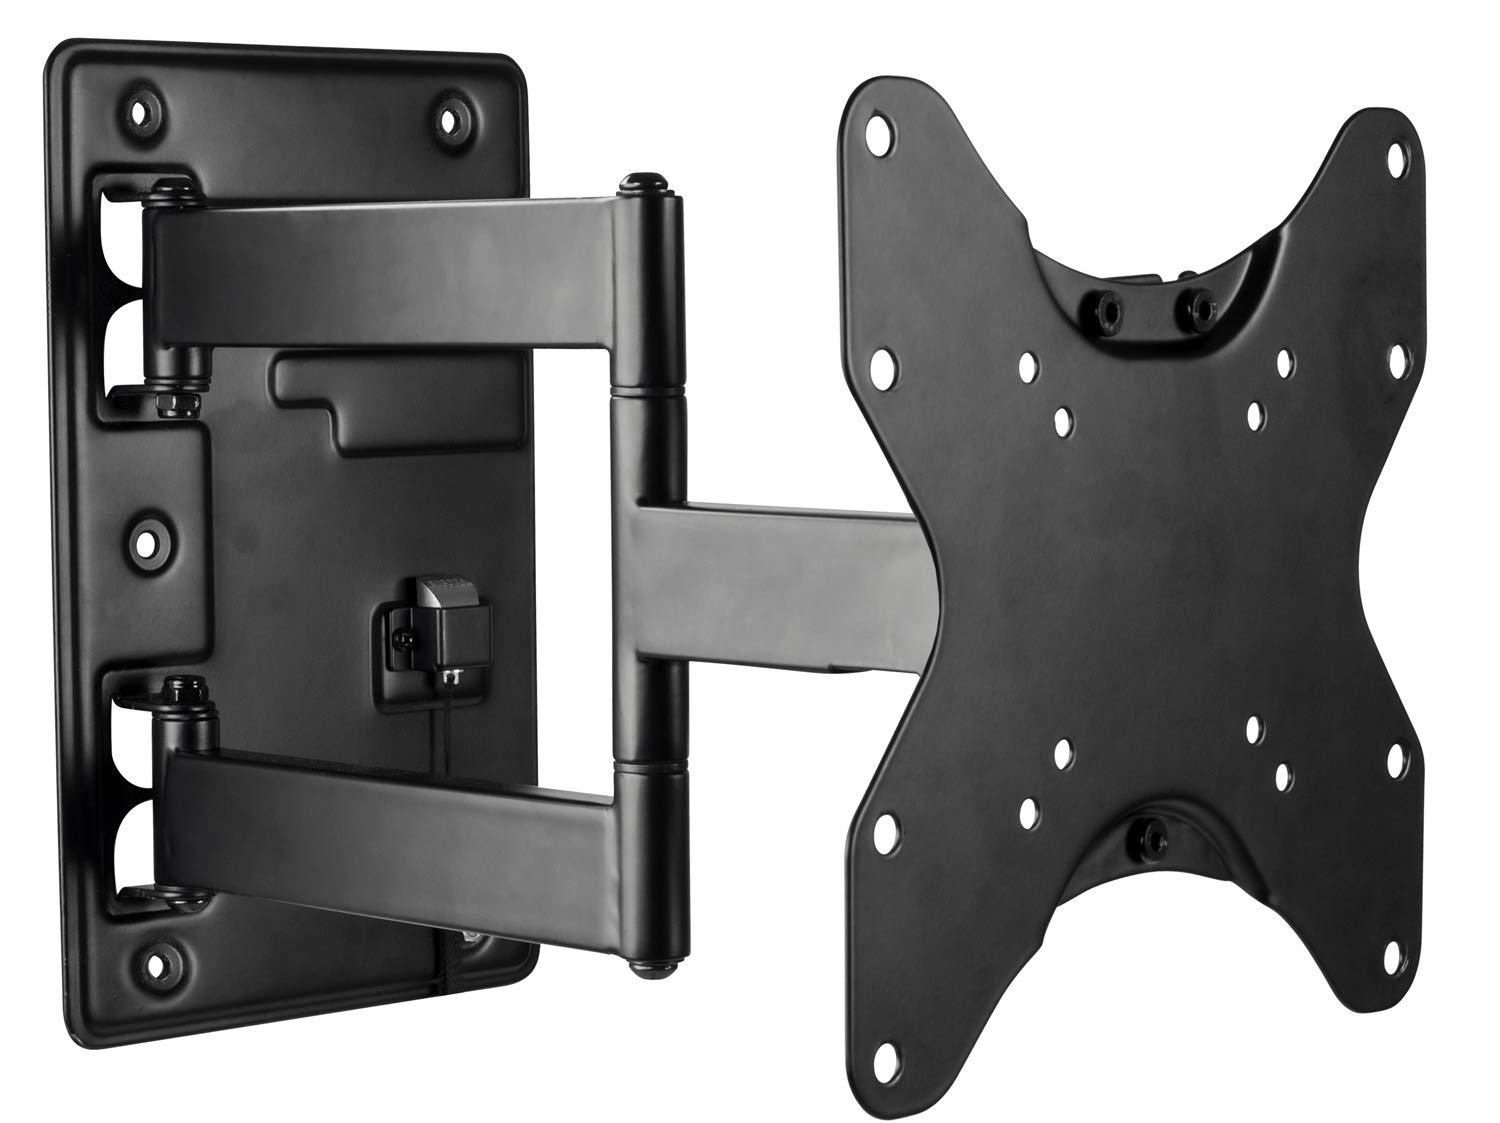 Mount-It! Camper RV TV Wall Mount, Locking Detachable Bracket, Travel Trailer Accessory for Trailers, RVs, Campers, Motorhomes, and Marine Boats (MI-431)